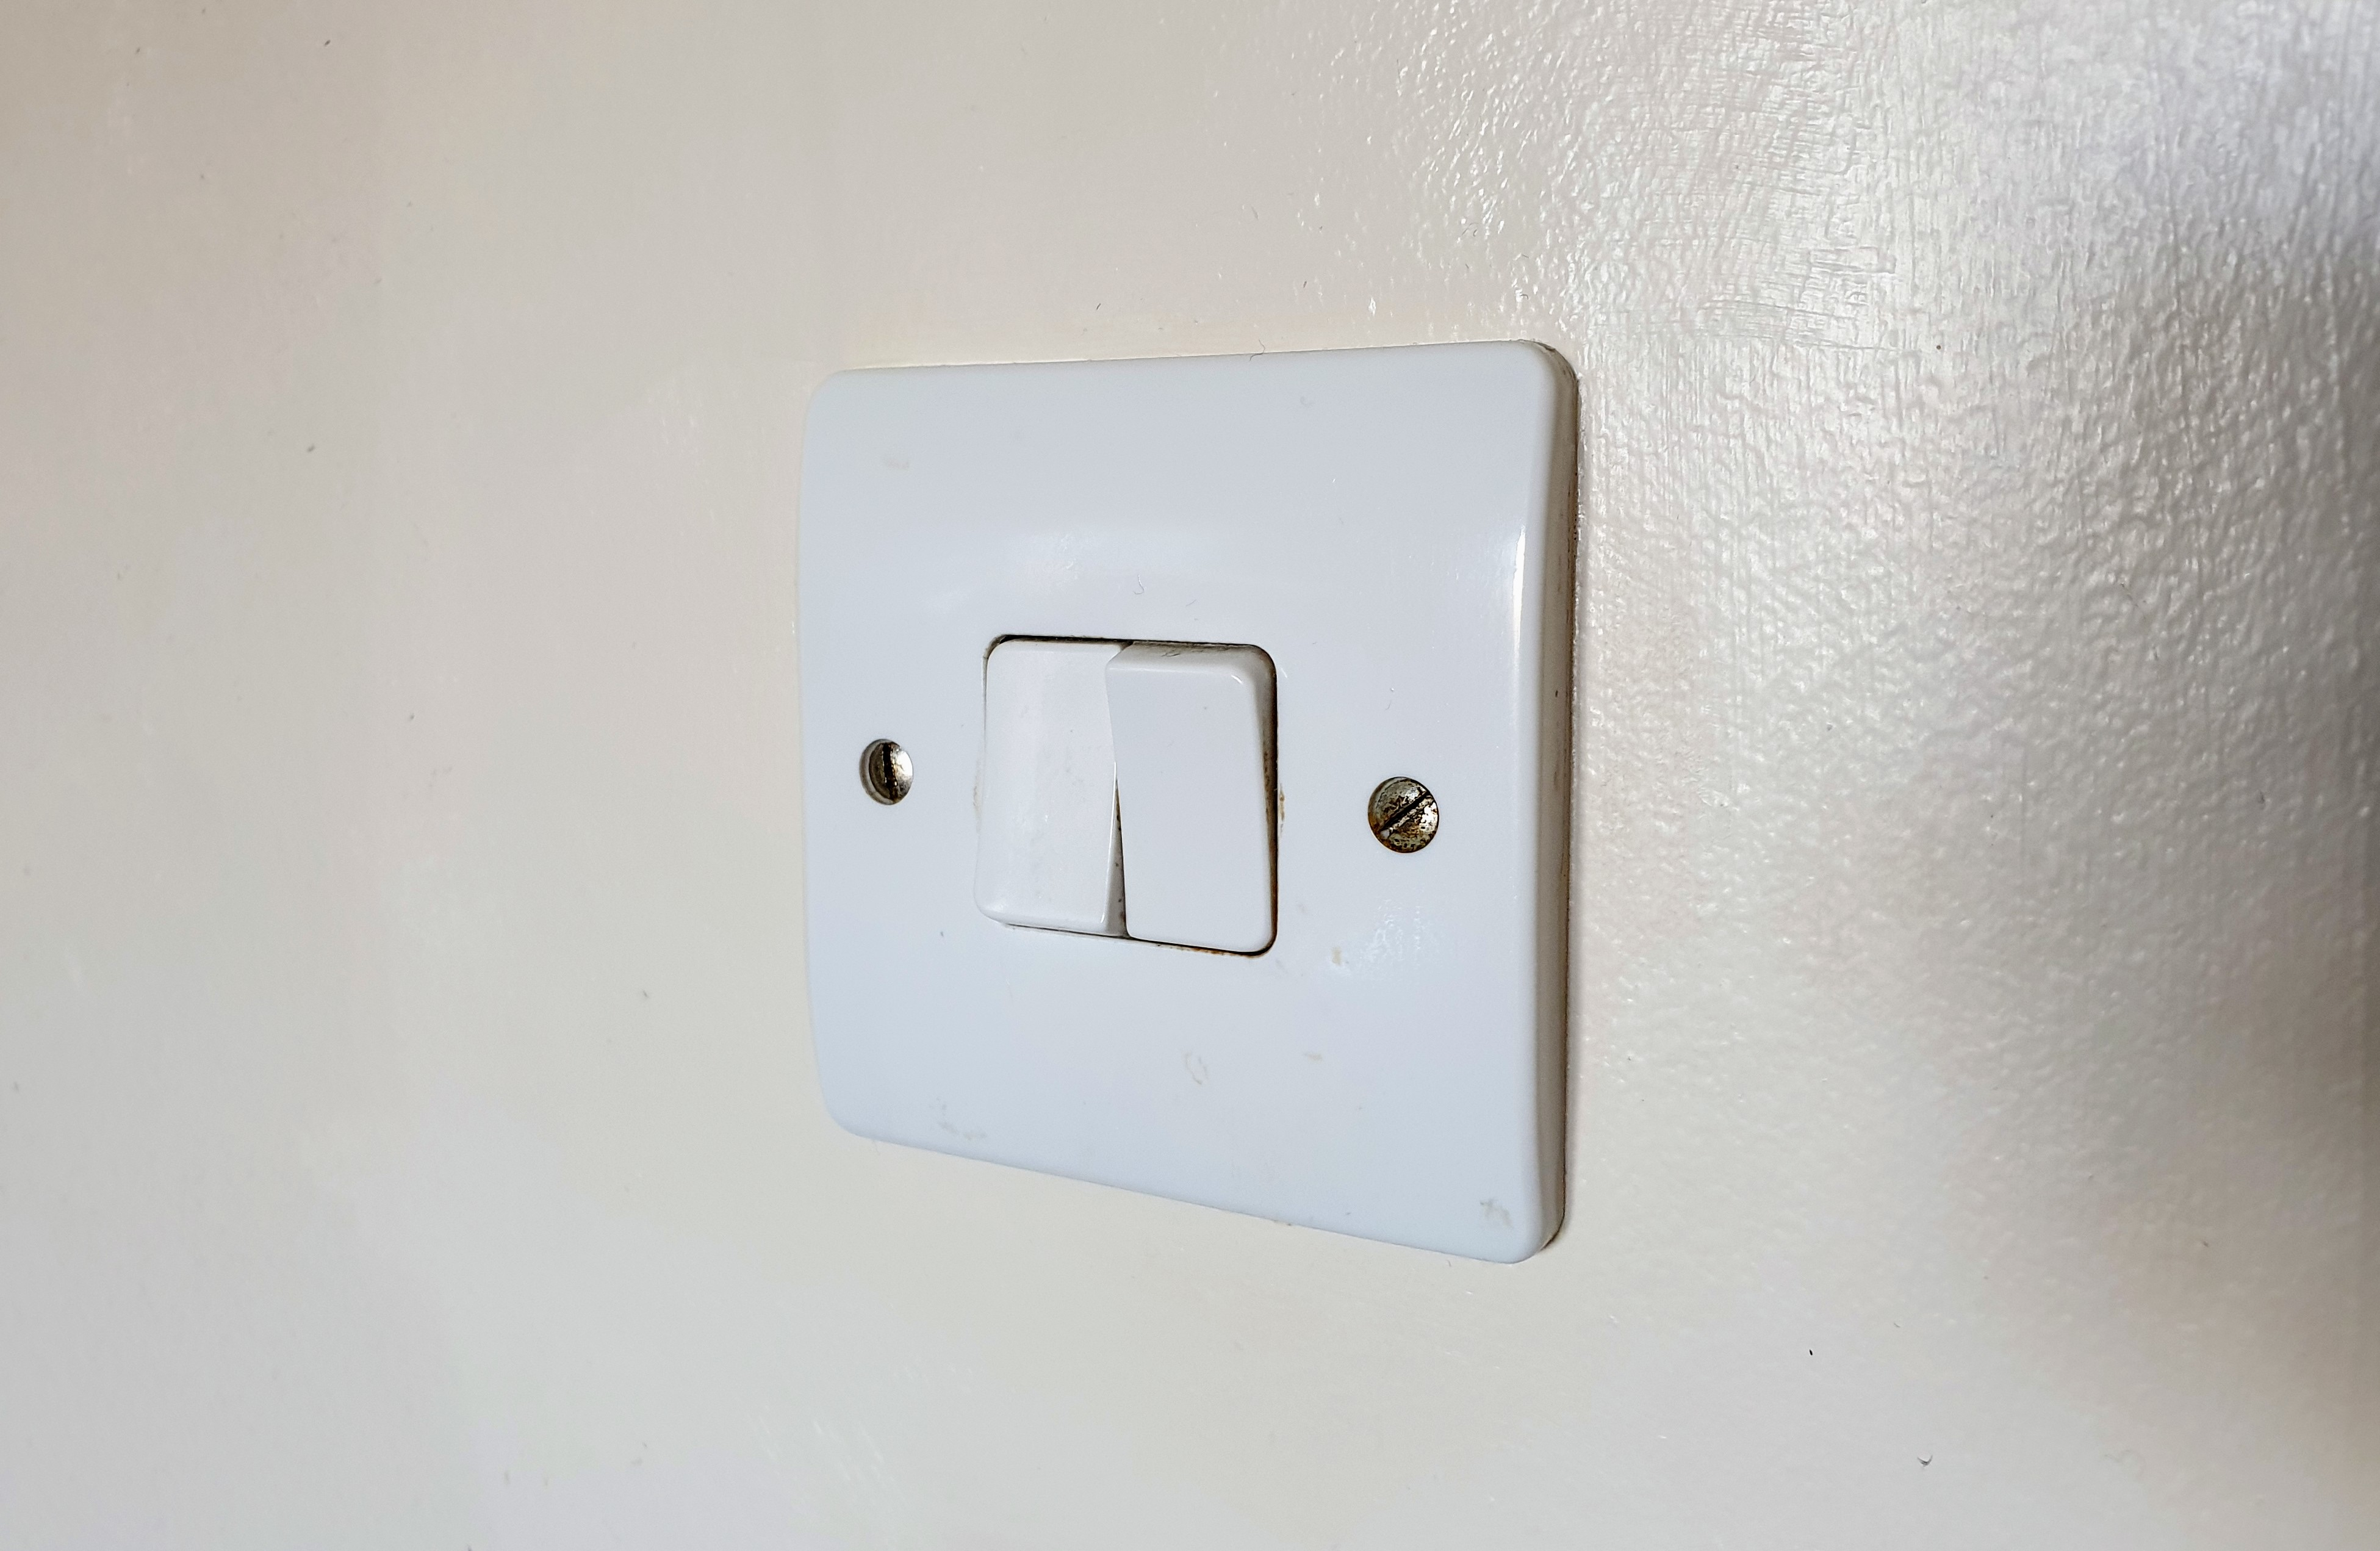 How To Replace Light Switches With Philips Hue Switches